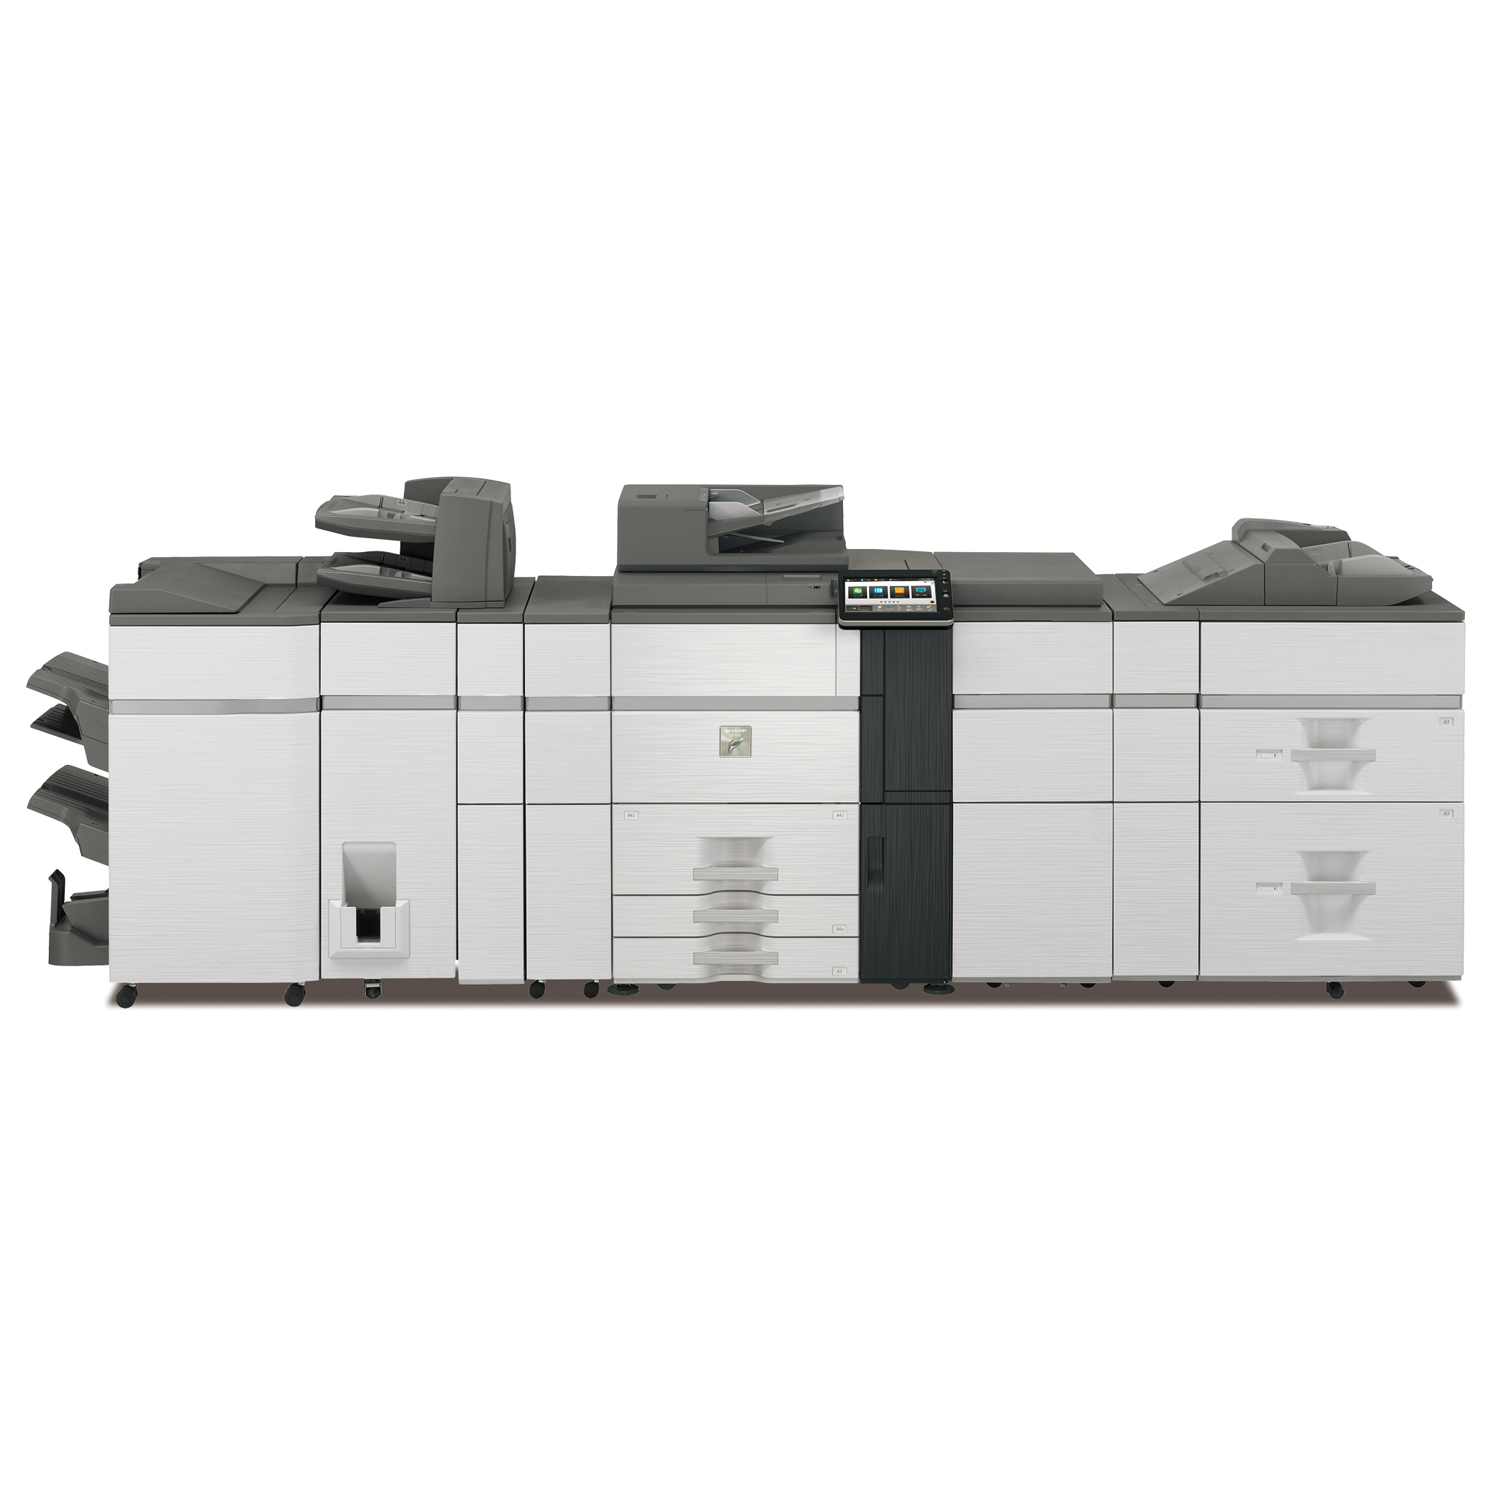 SharpMX-8081 Color Laser MFP, New (MX-8081)